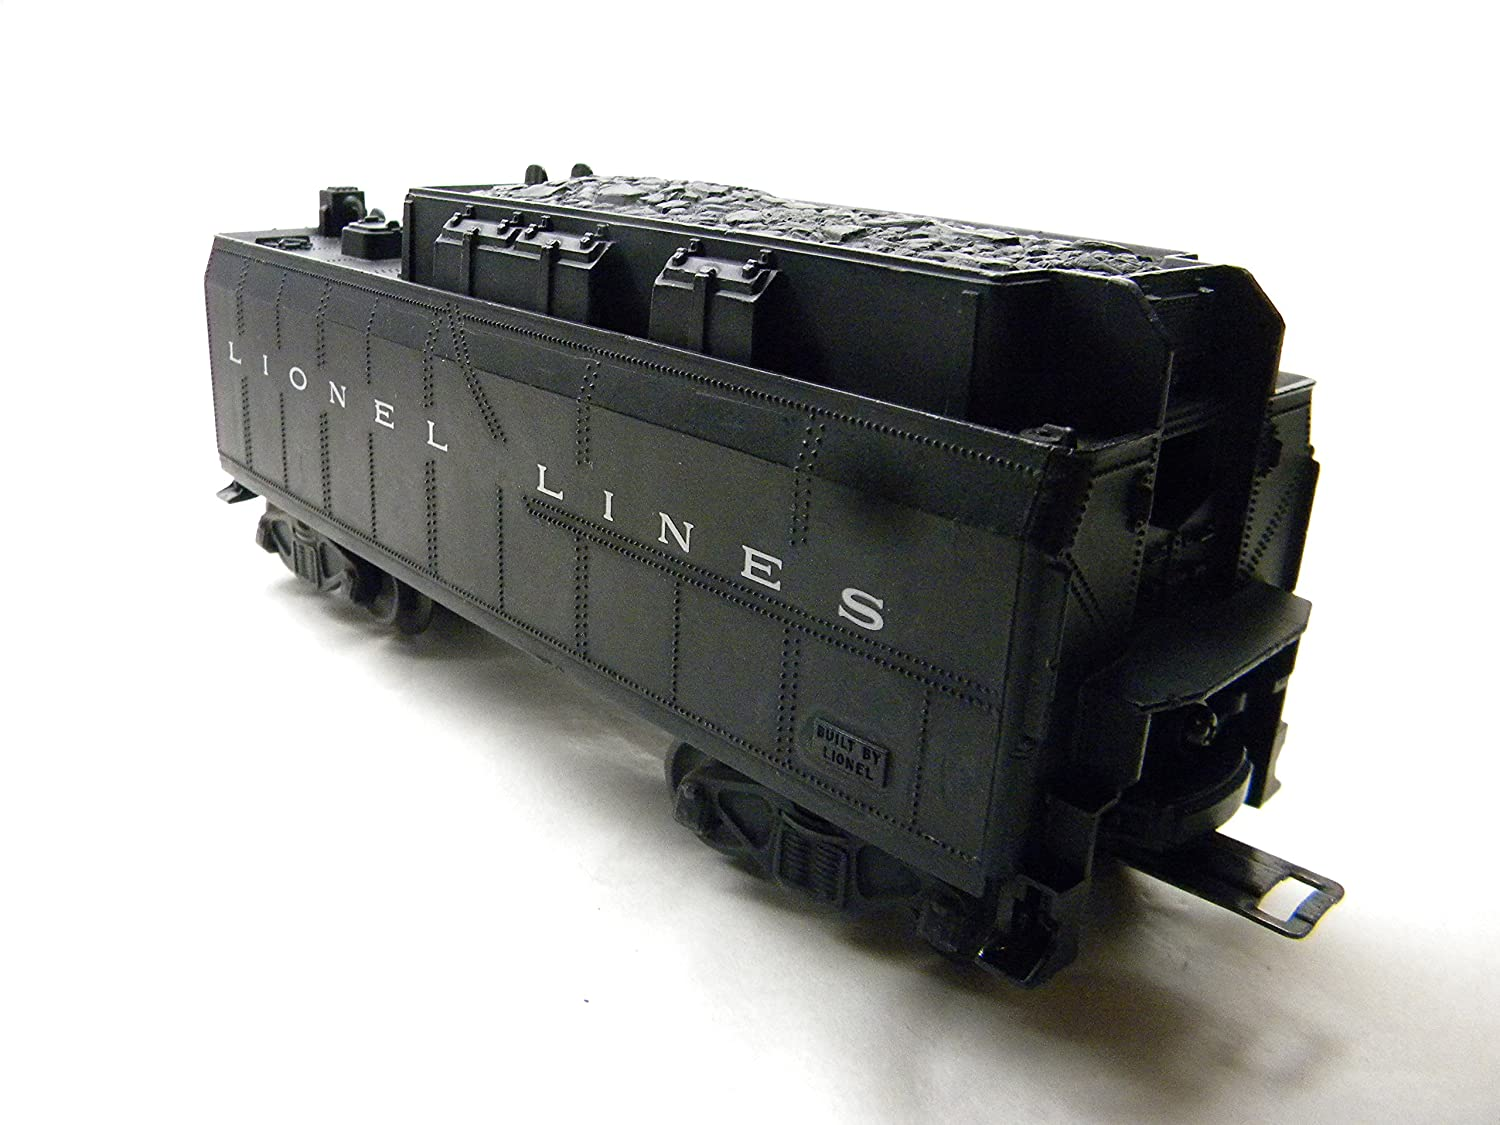 Lionel Whistle Wiring Diagrams